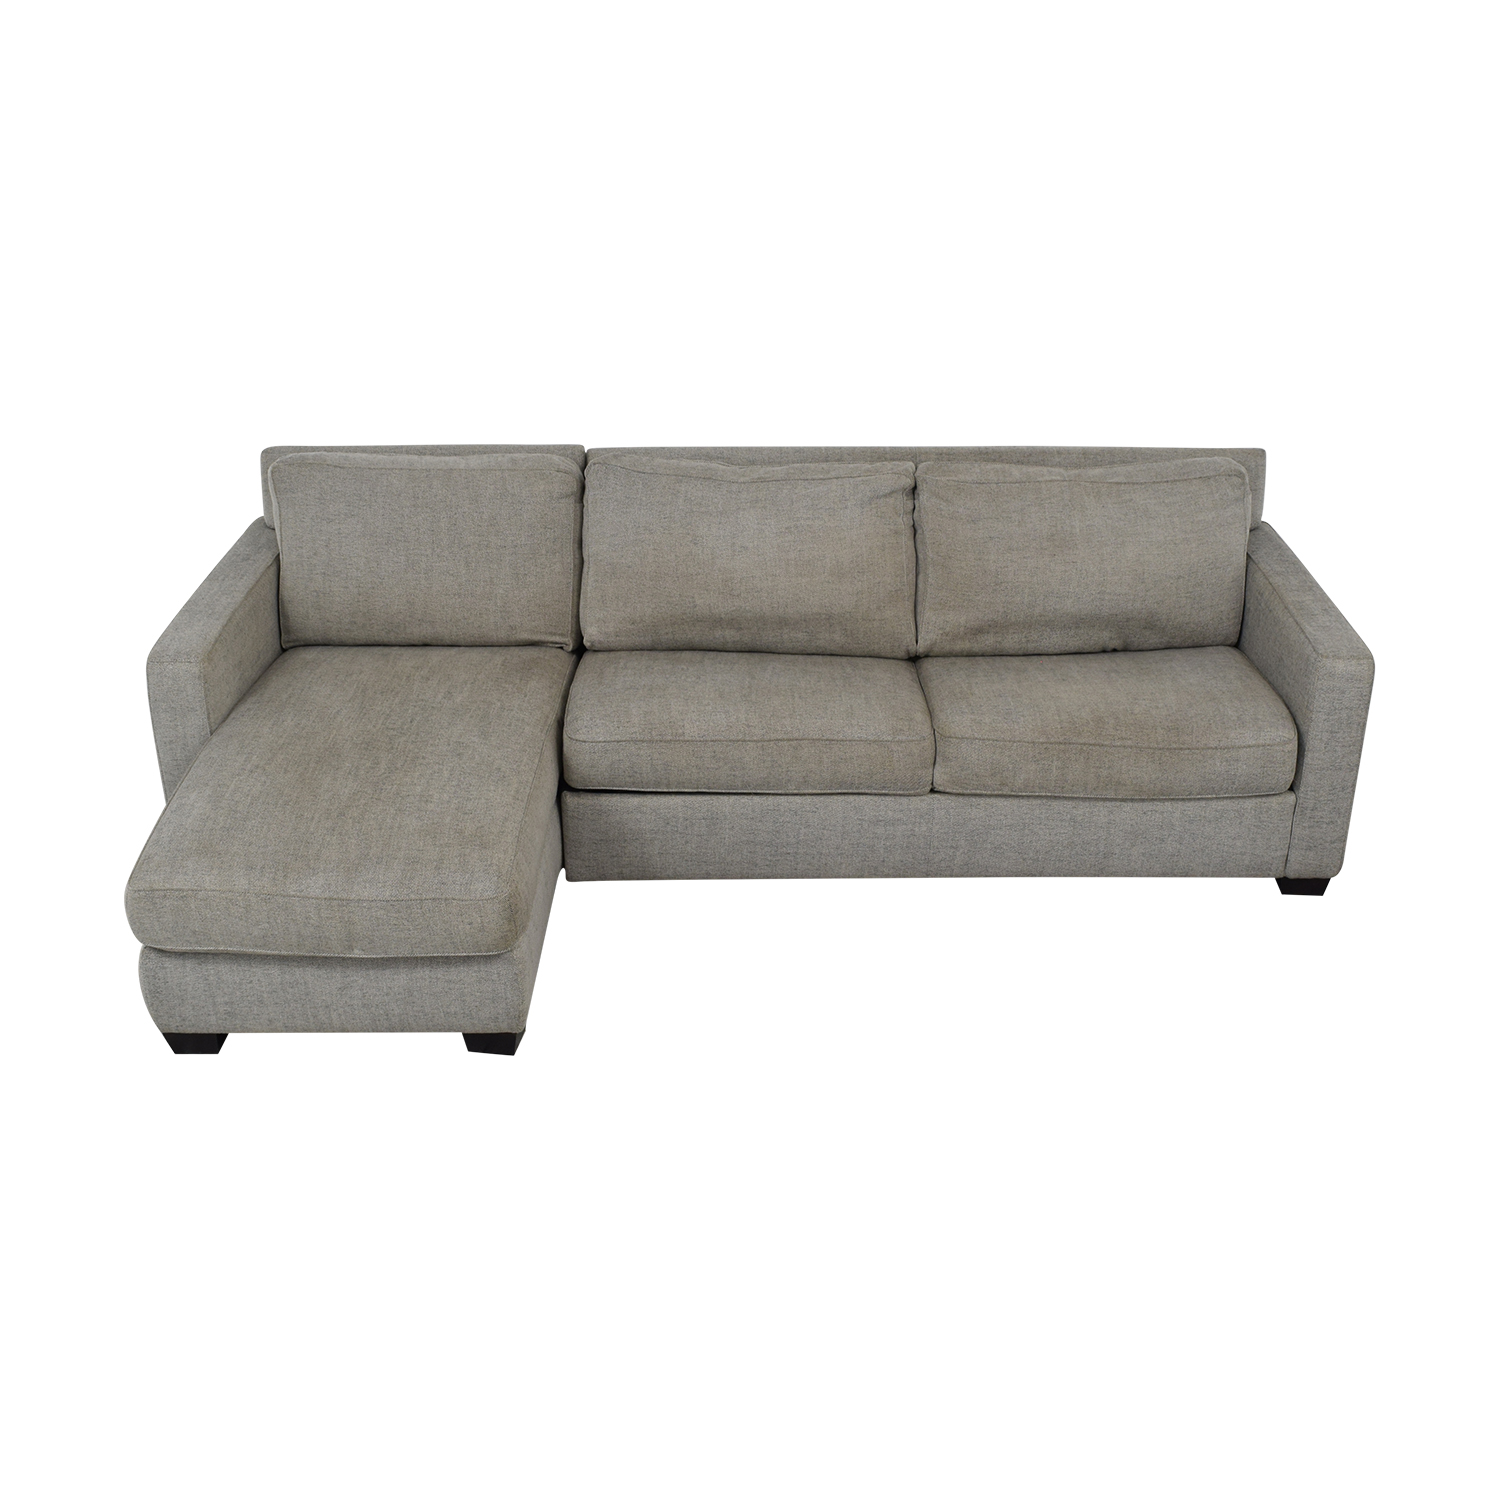 West Elm West Elm Henry Sleeper Sectional Sofa with Storage used